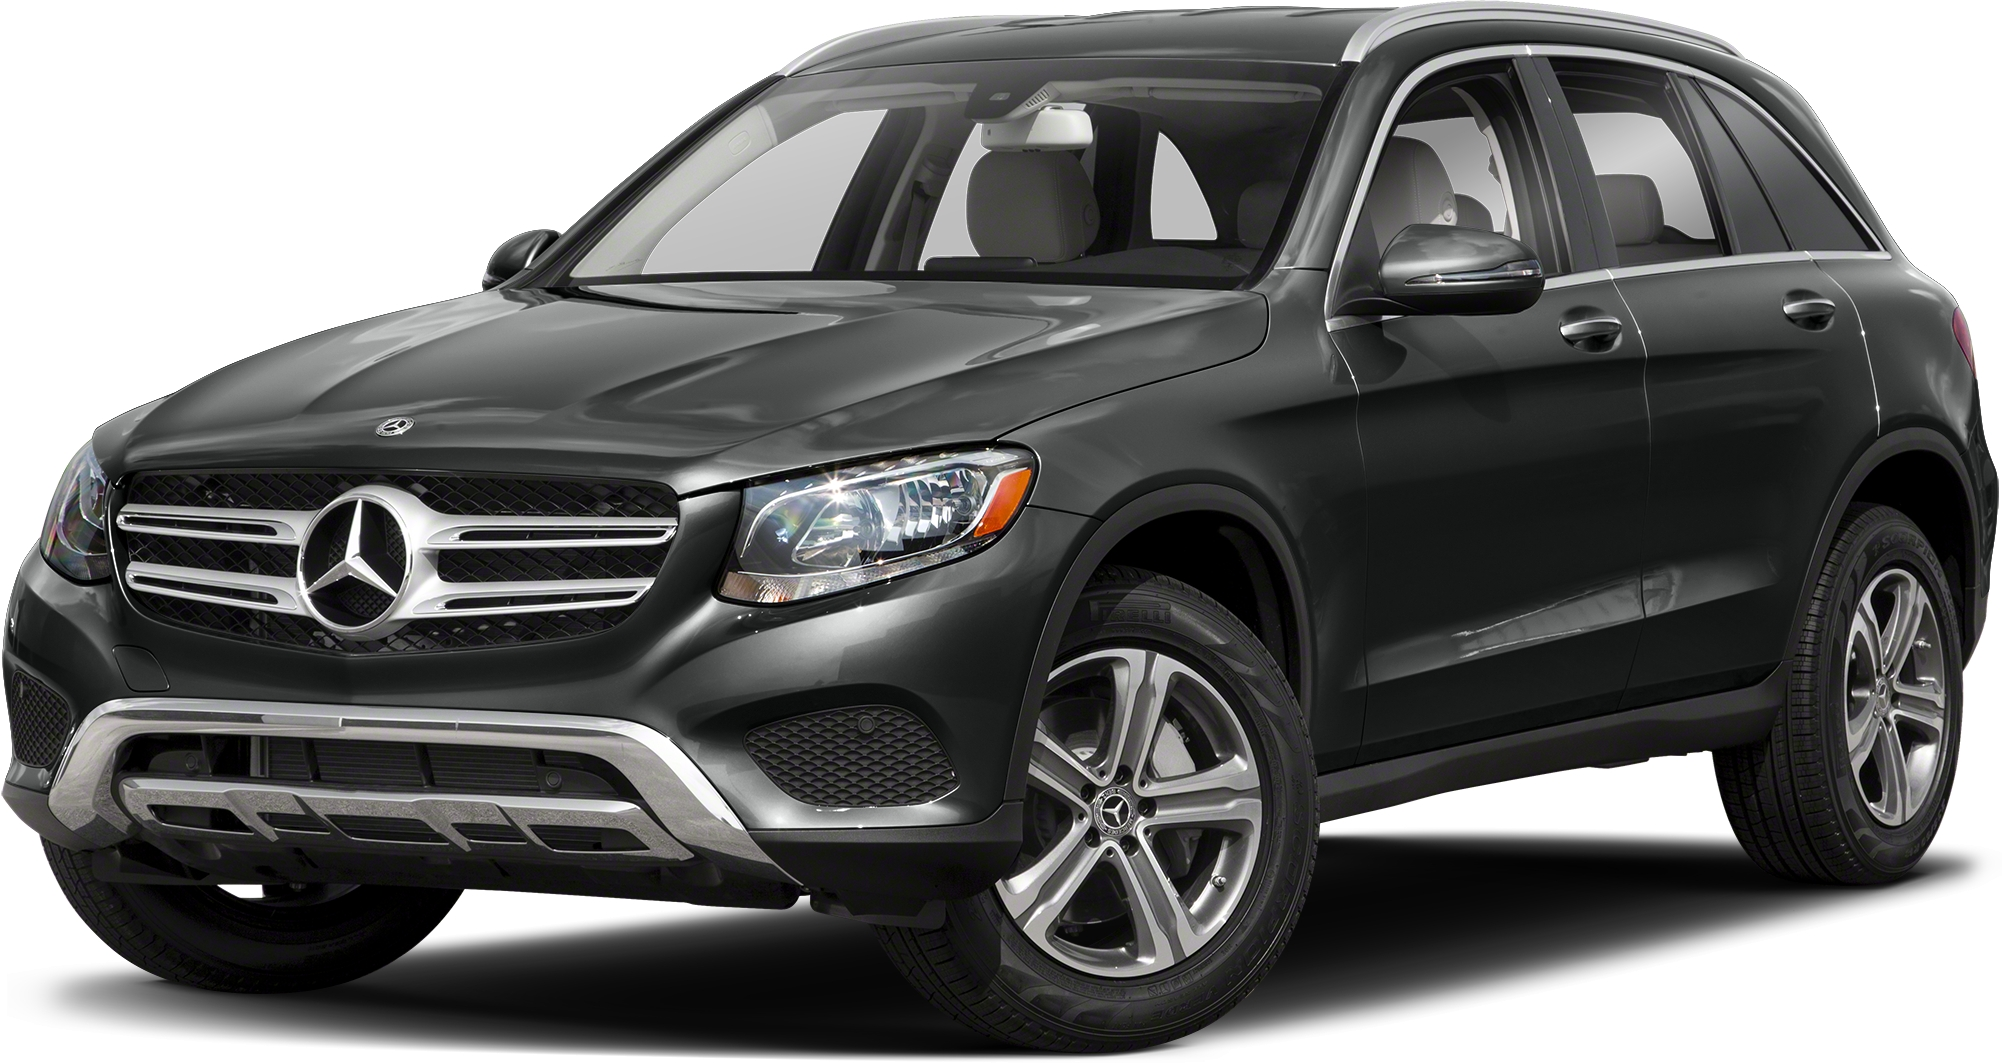 2019 mercedes benz glc 300 4matic suv 28127339 for sale price purchase lease near me. Black Bedroom Furniture Sets. Home Design Ideas